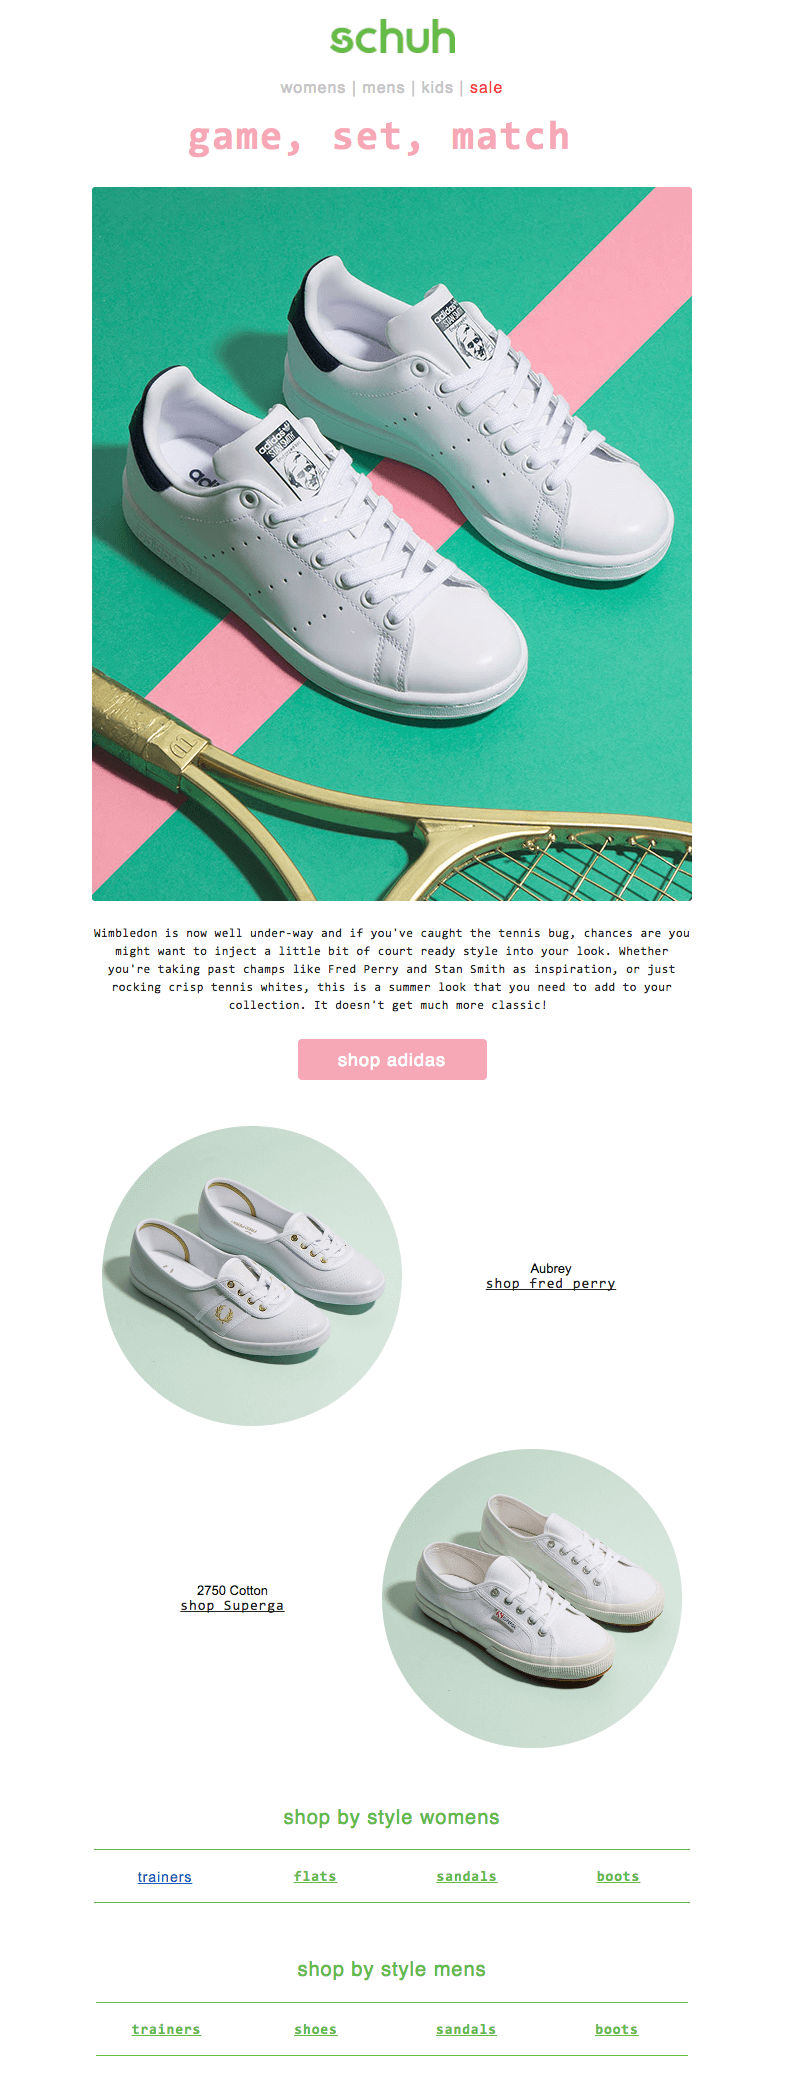 Millennial pink email form Schuh